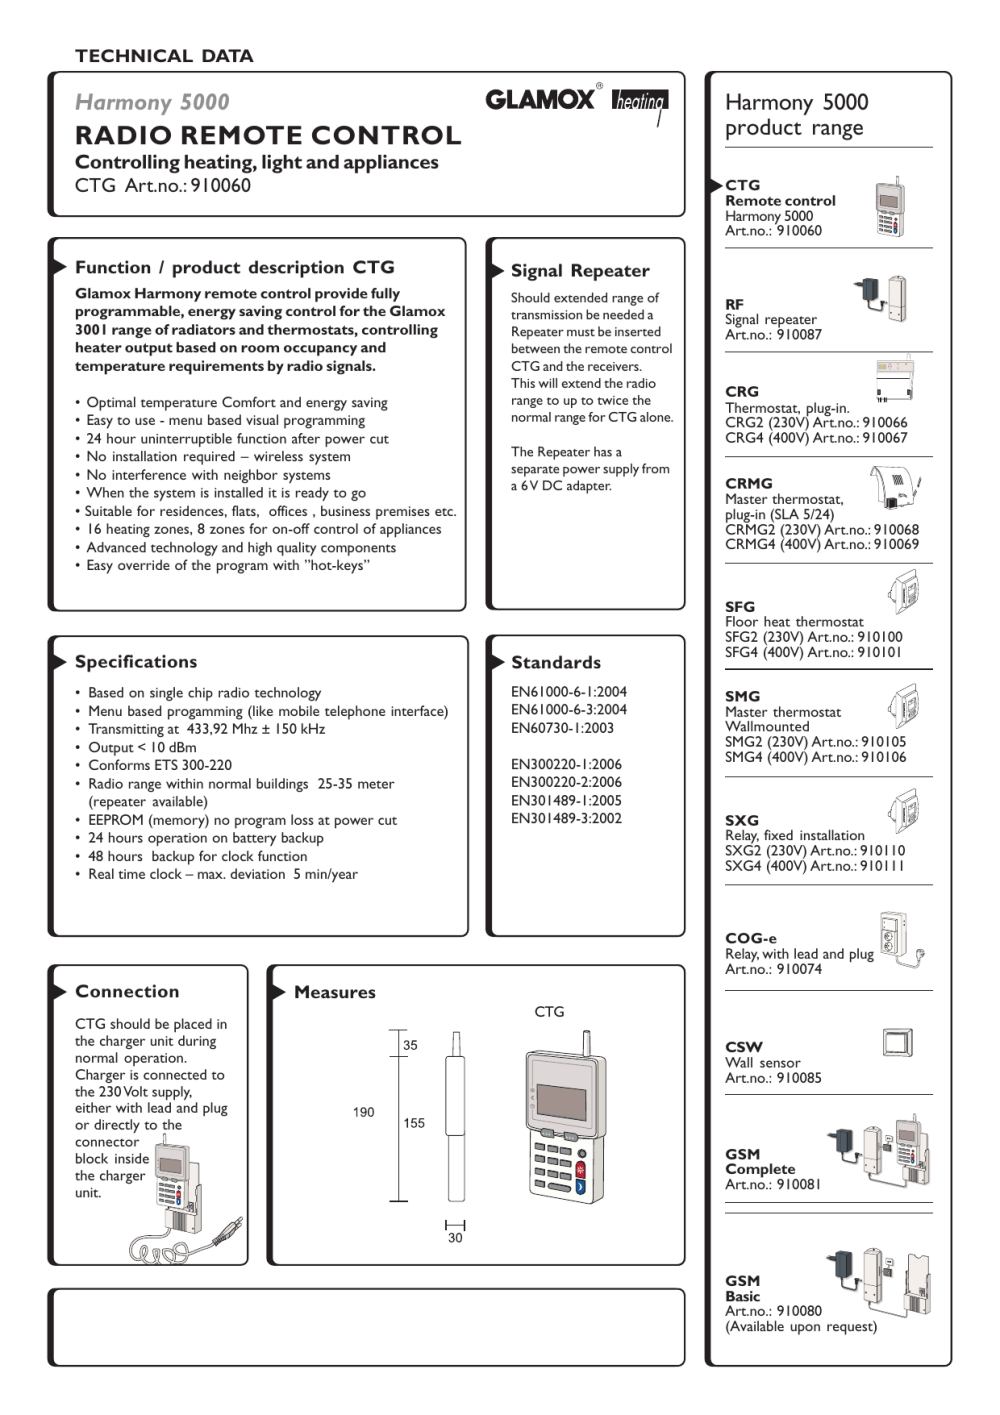 medium resolution of  radio remote control manualzz com on refrigerator schematic diagram air conditioning diagram